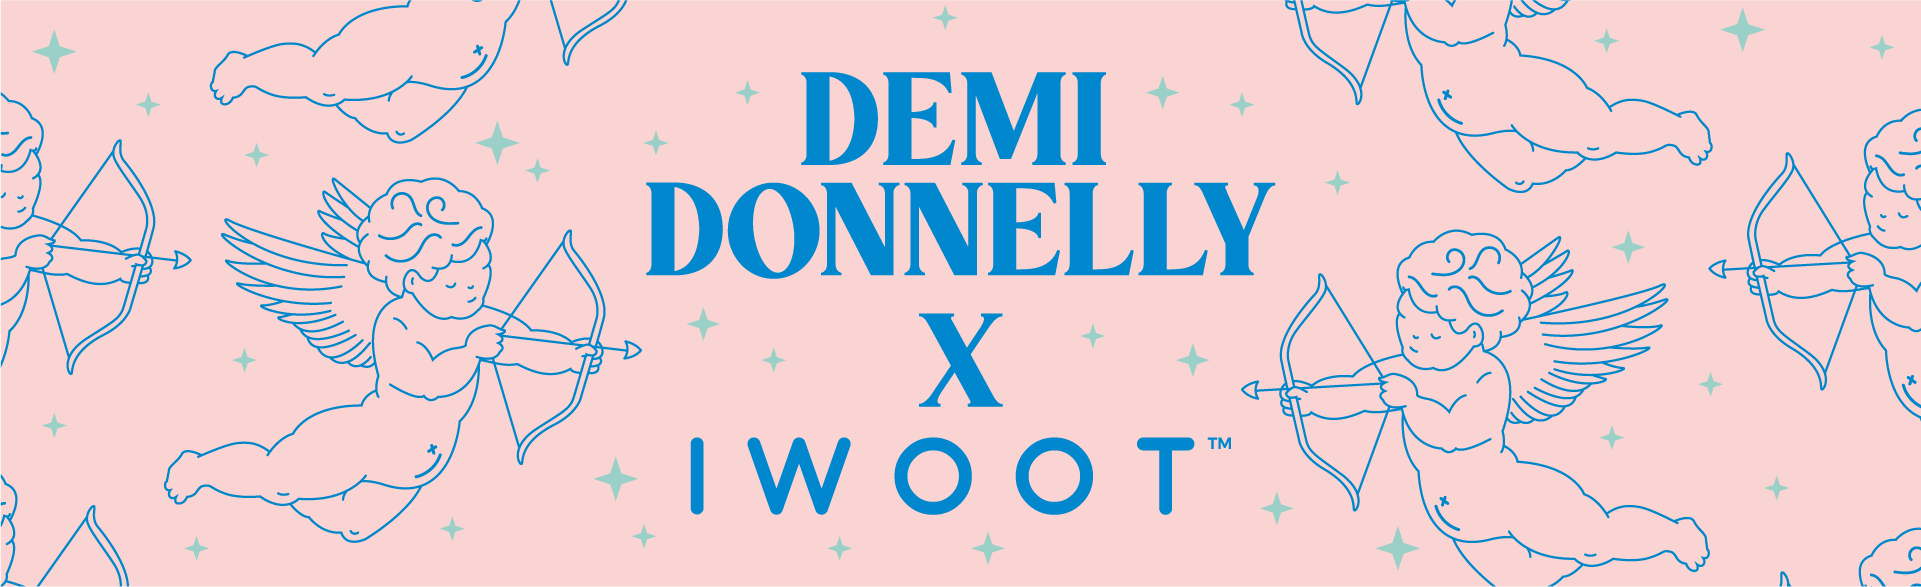 Demi Donnelly Store Page